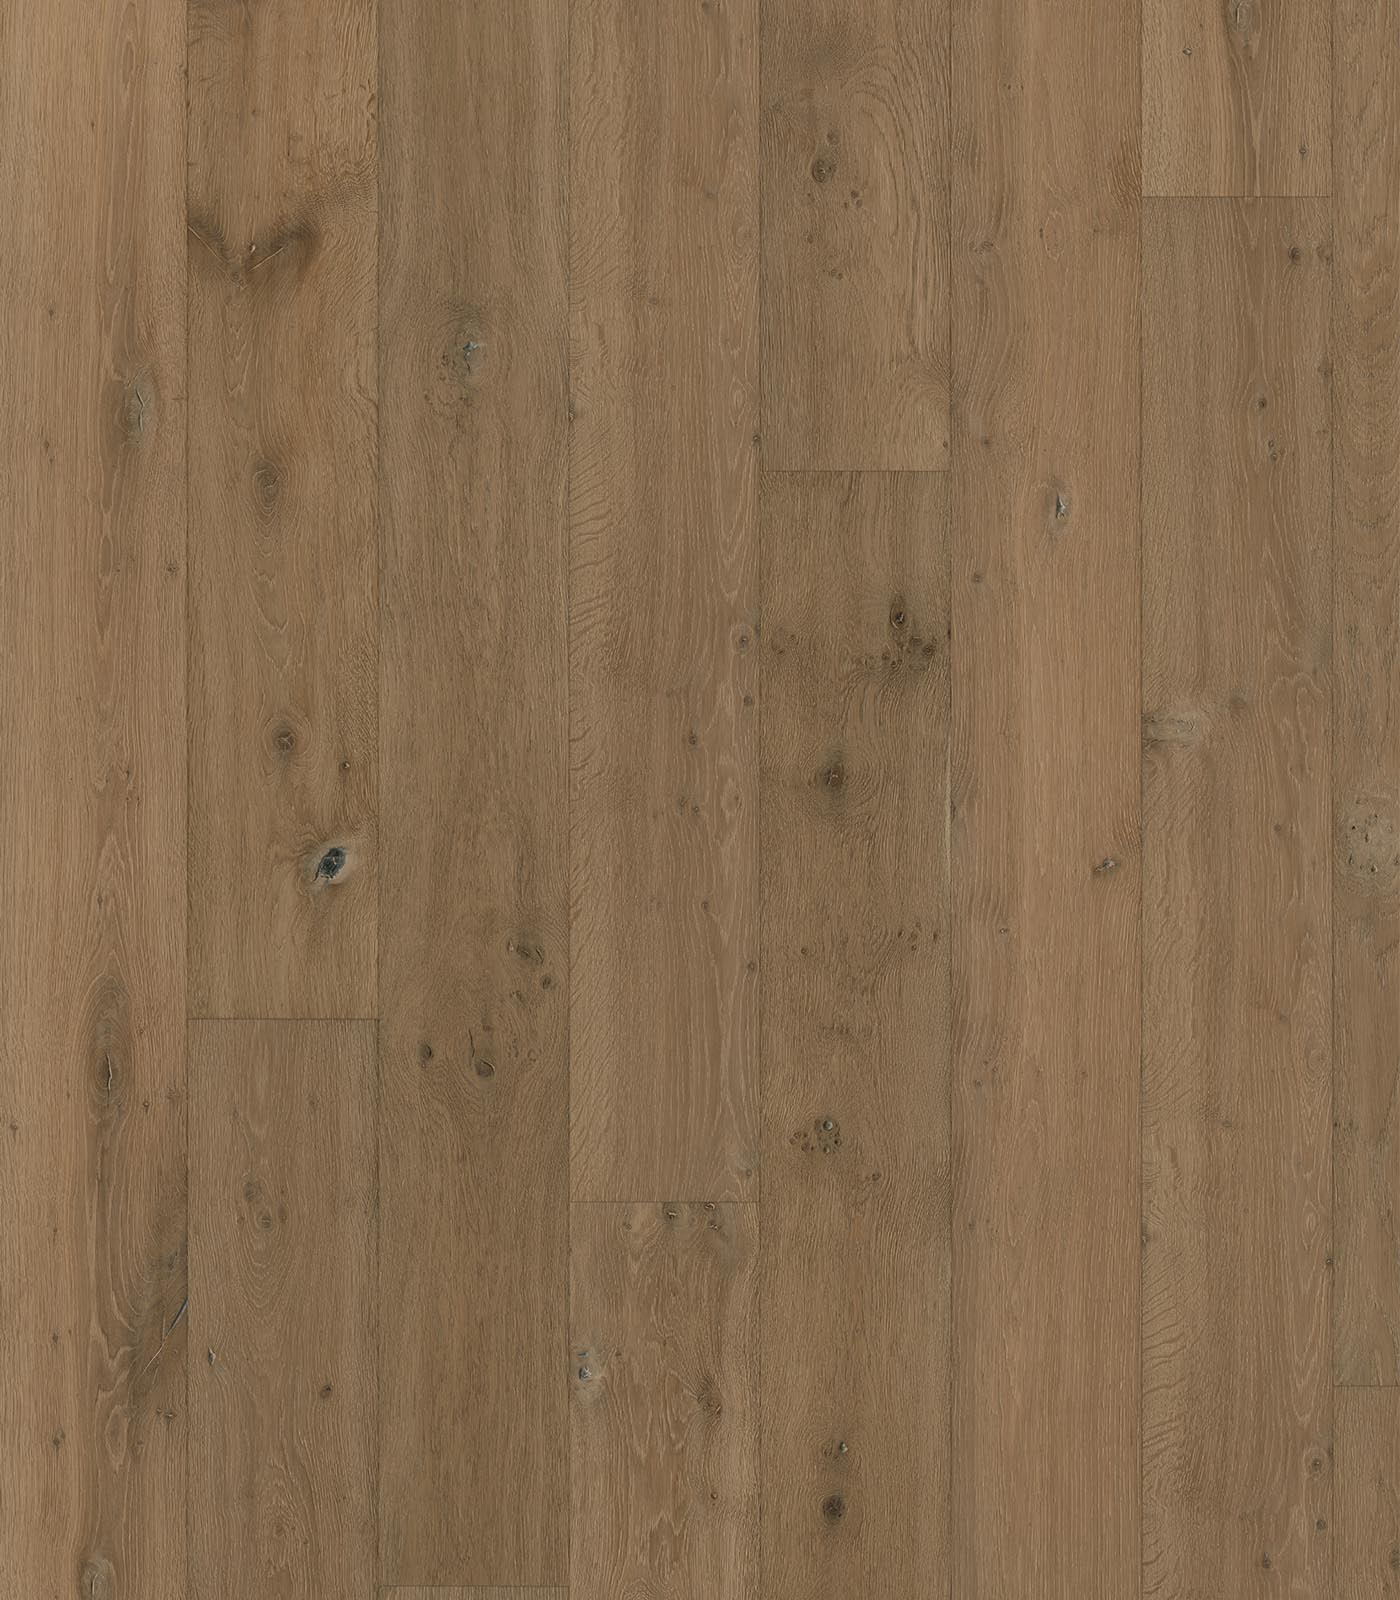 Bergen-European Oak floors-Heritage Collection-flat